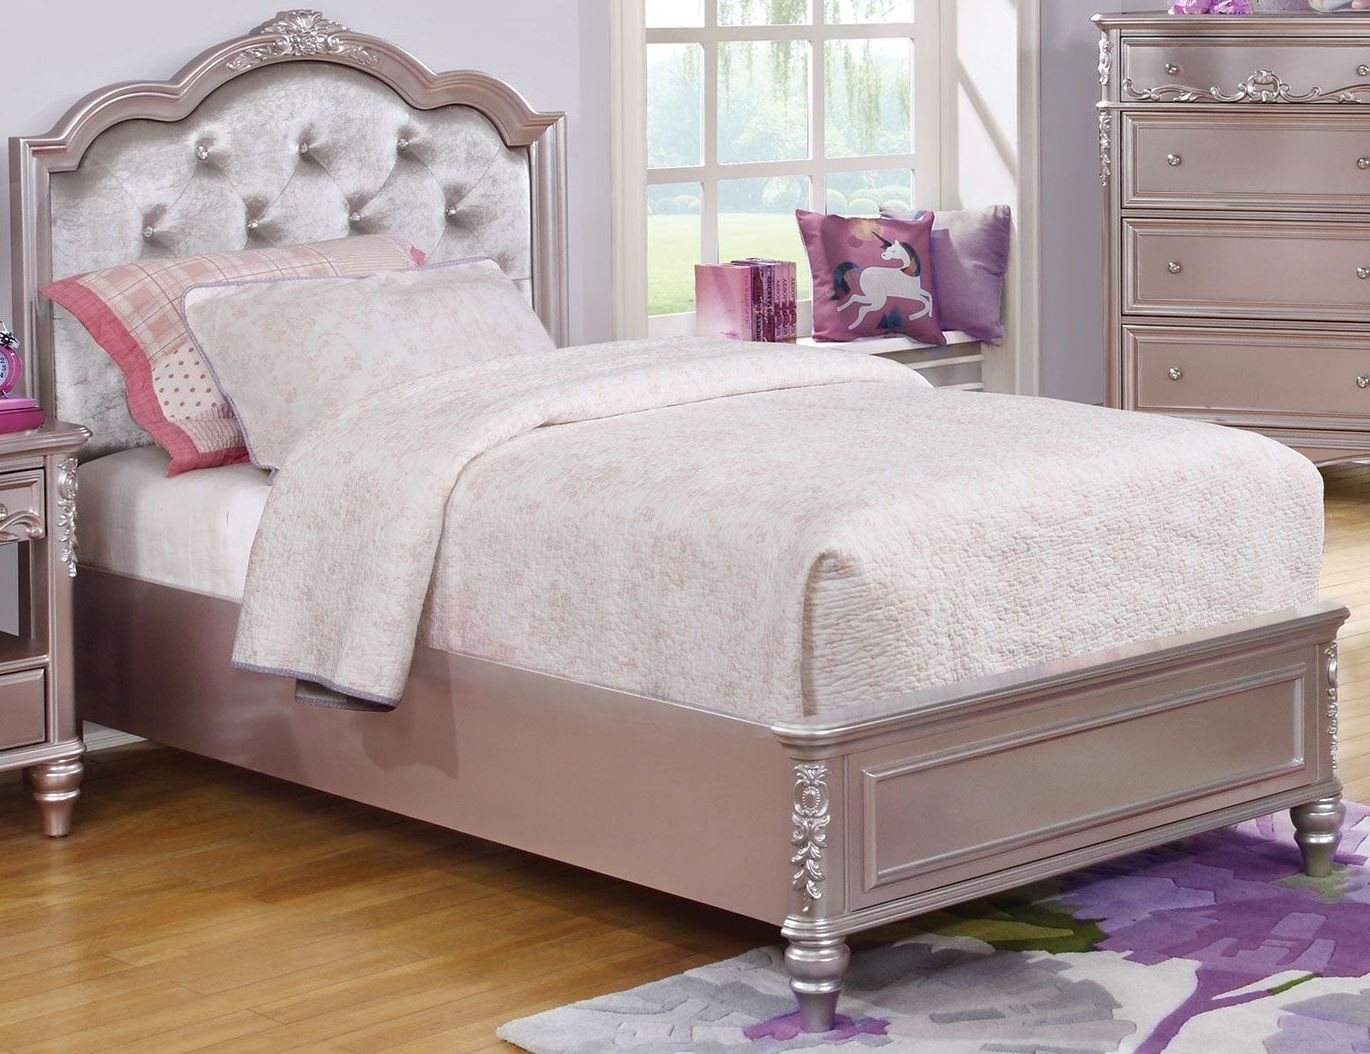 Caroline Metallic Lilac Youth Platform Bedroom Set from